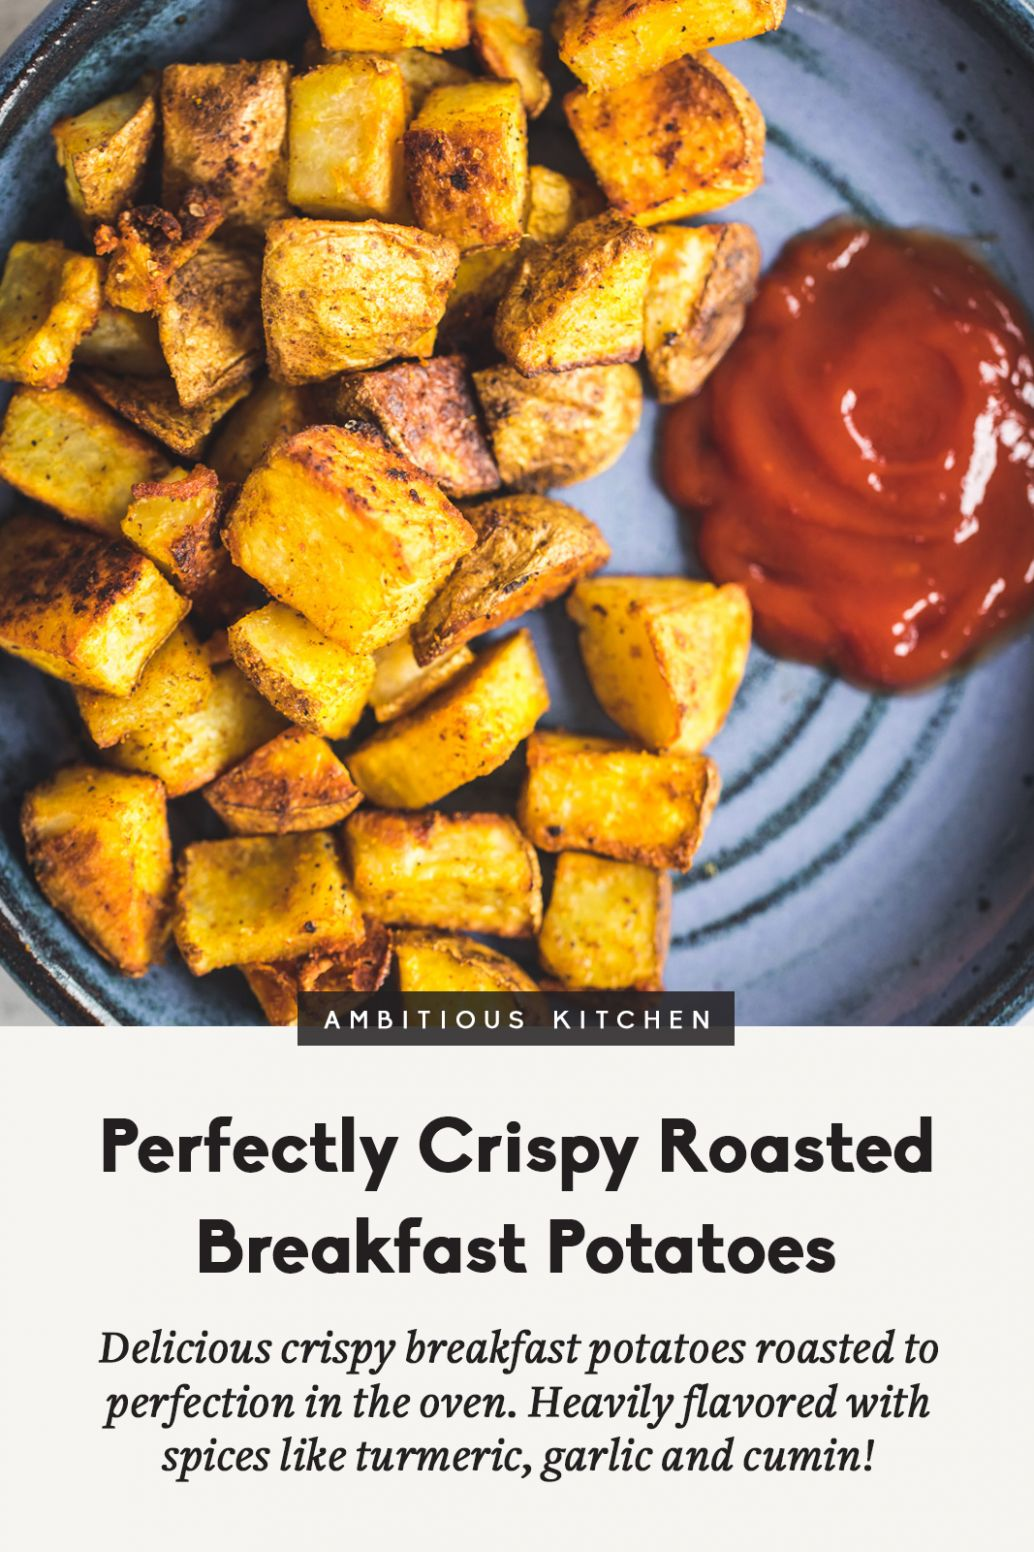 Perfectly Crispy Roasted Breakfast Potatoes | Ambitious Kitchen